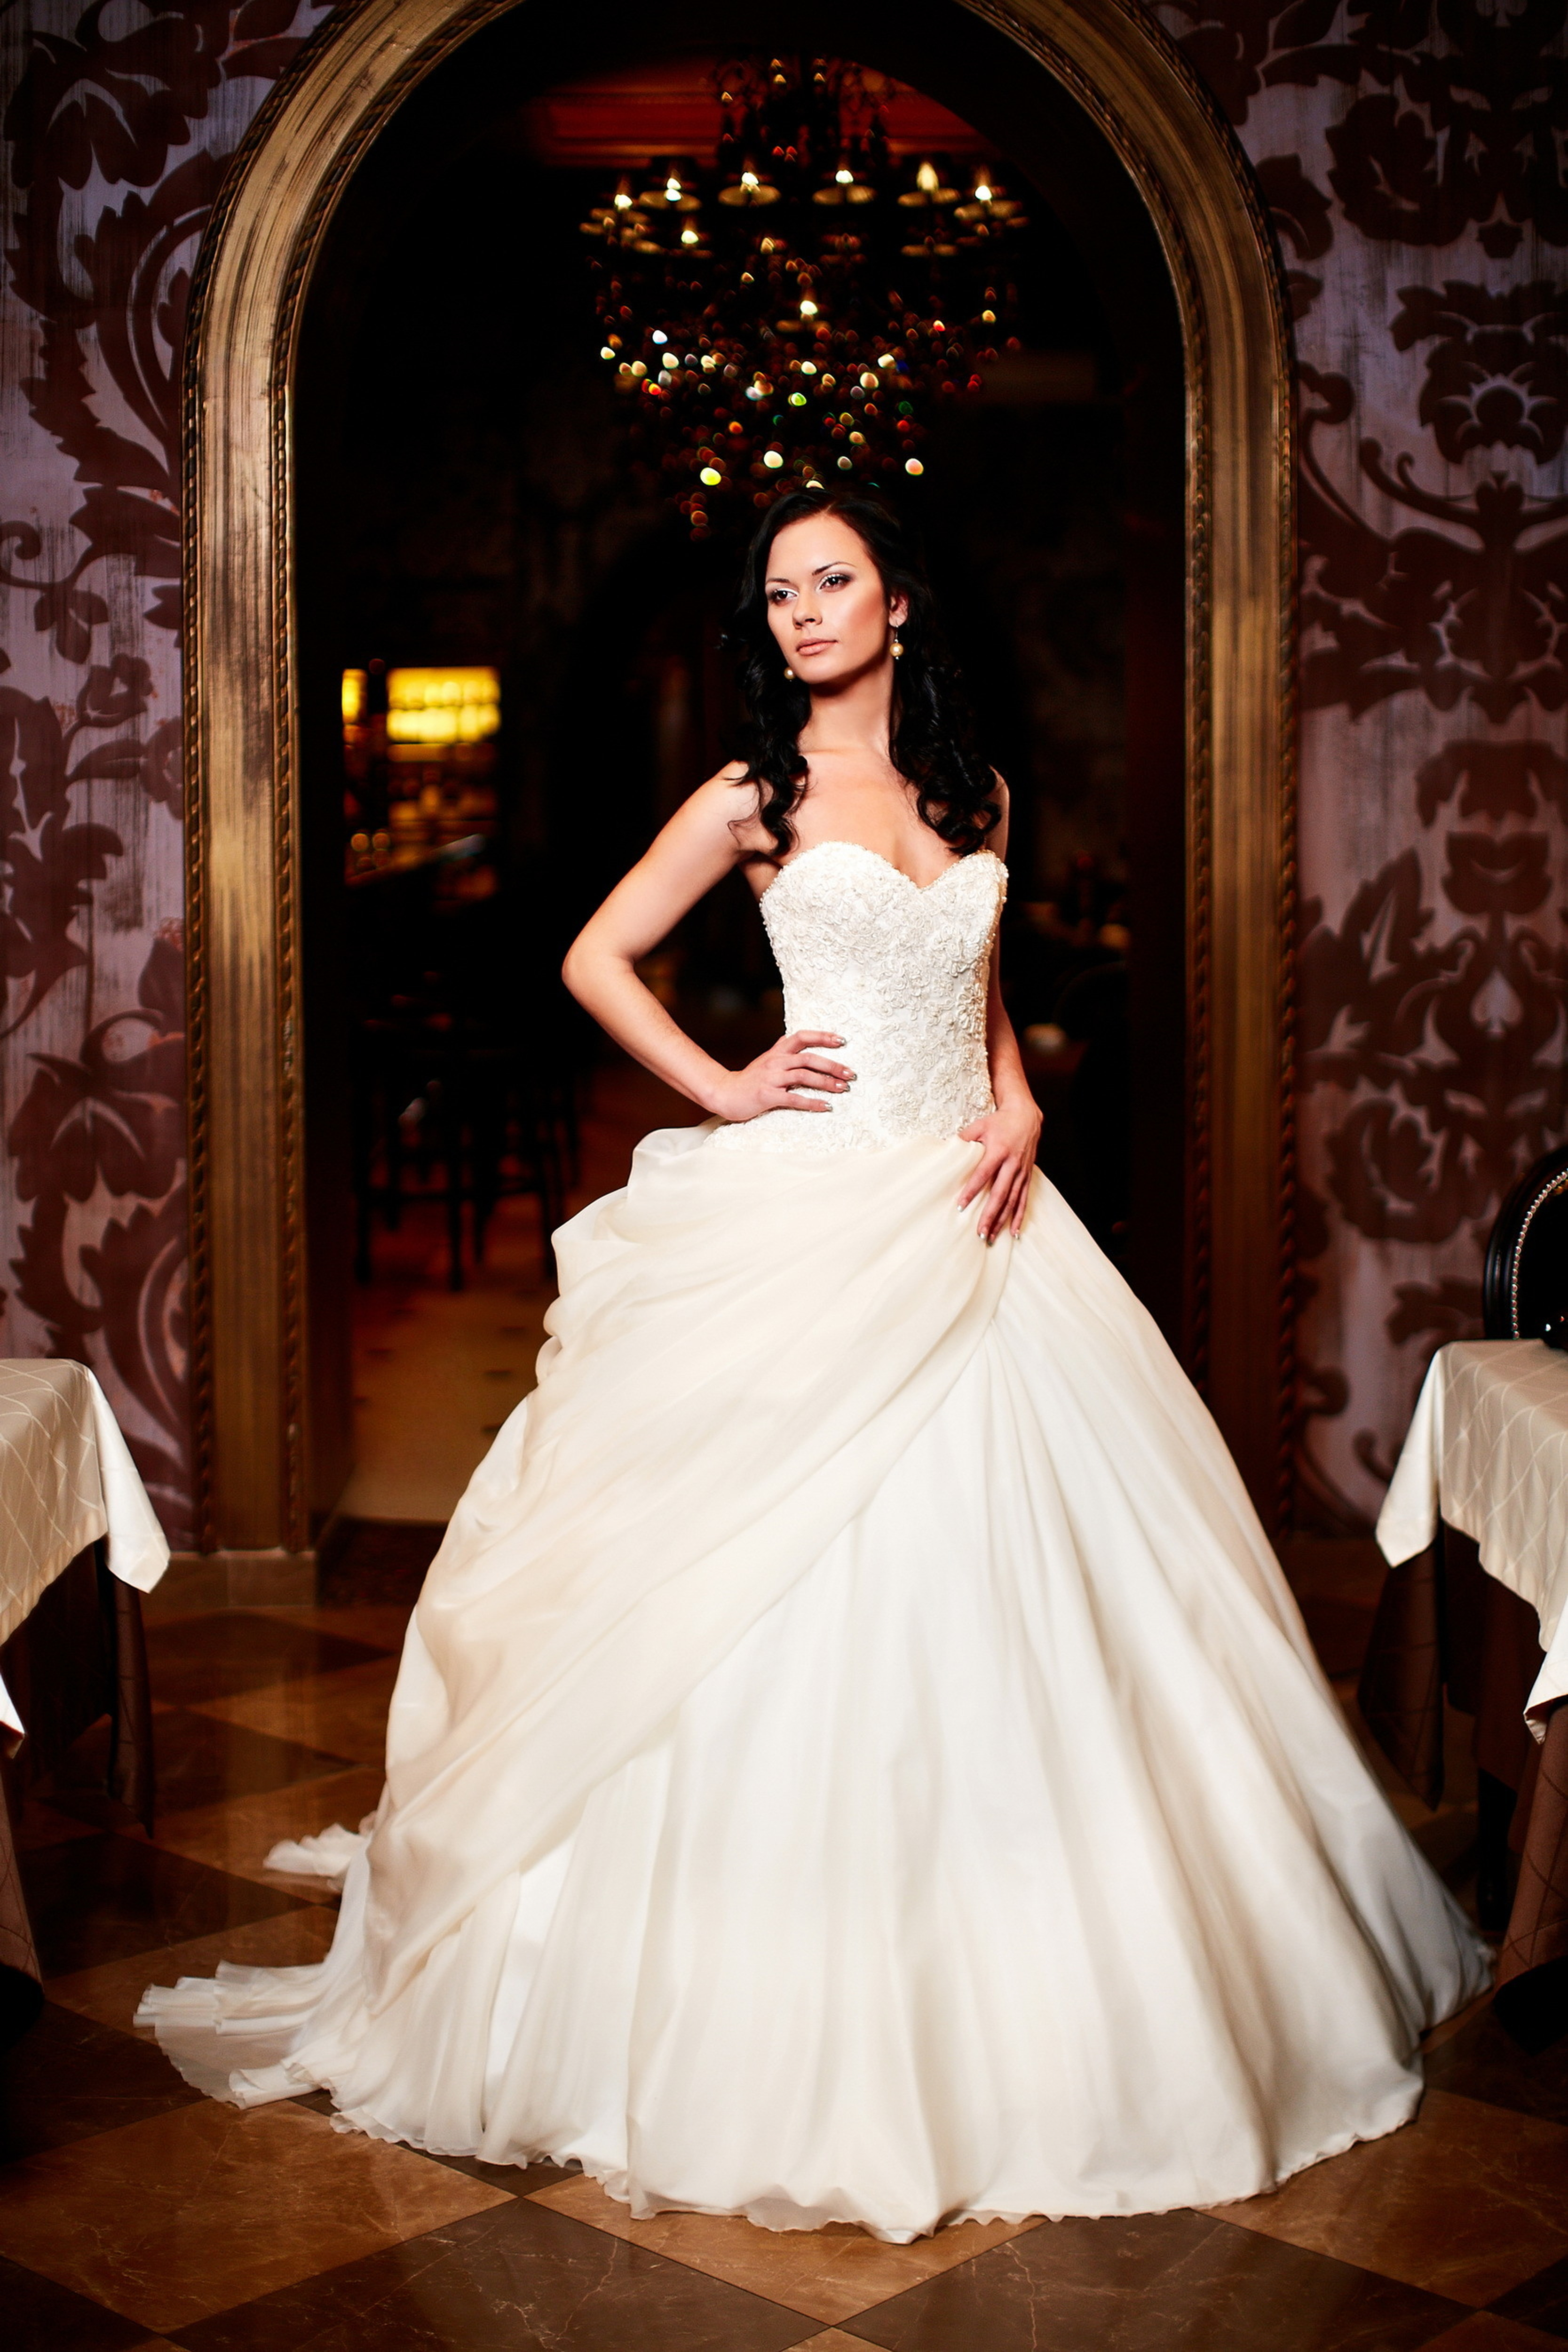 Strapless Beading Applique Satin A-line Wedding Dress With Pleat Belt Sweep Train Lace-up High Quality Bridal Dress